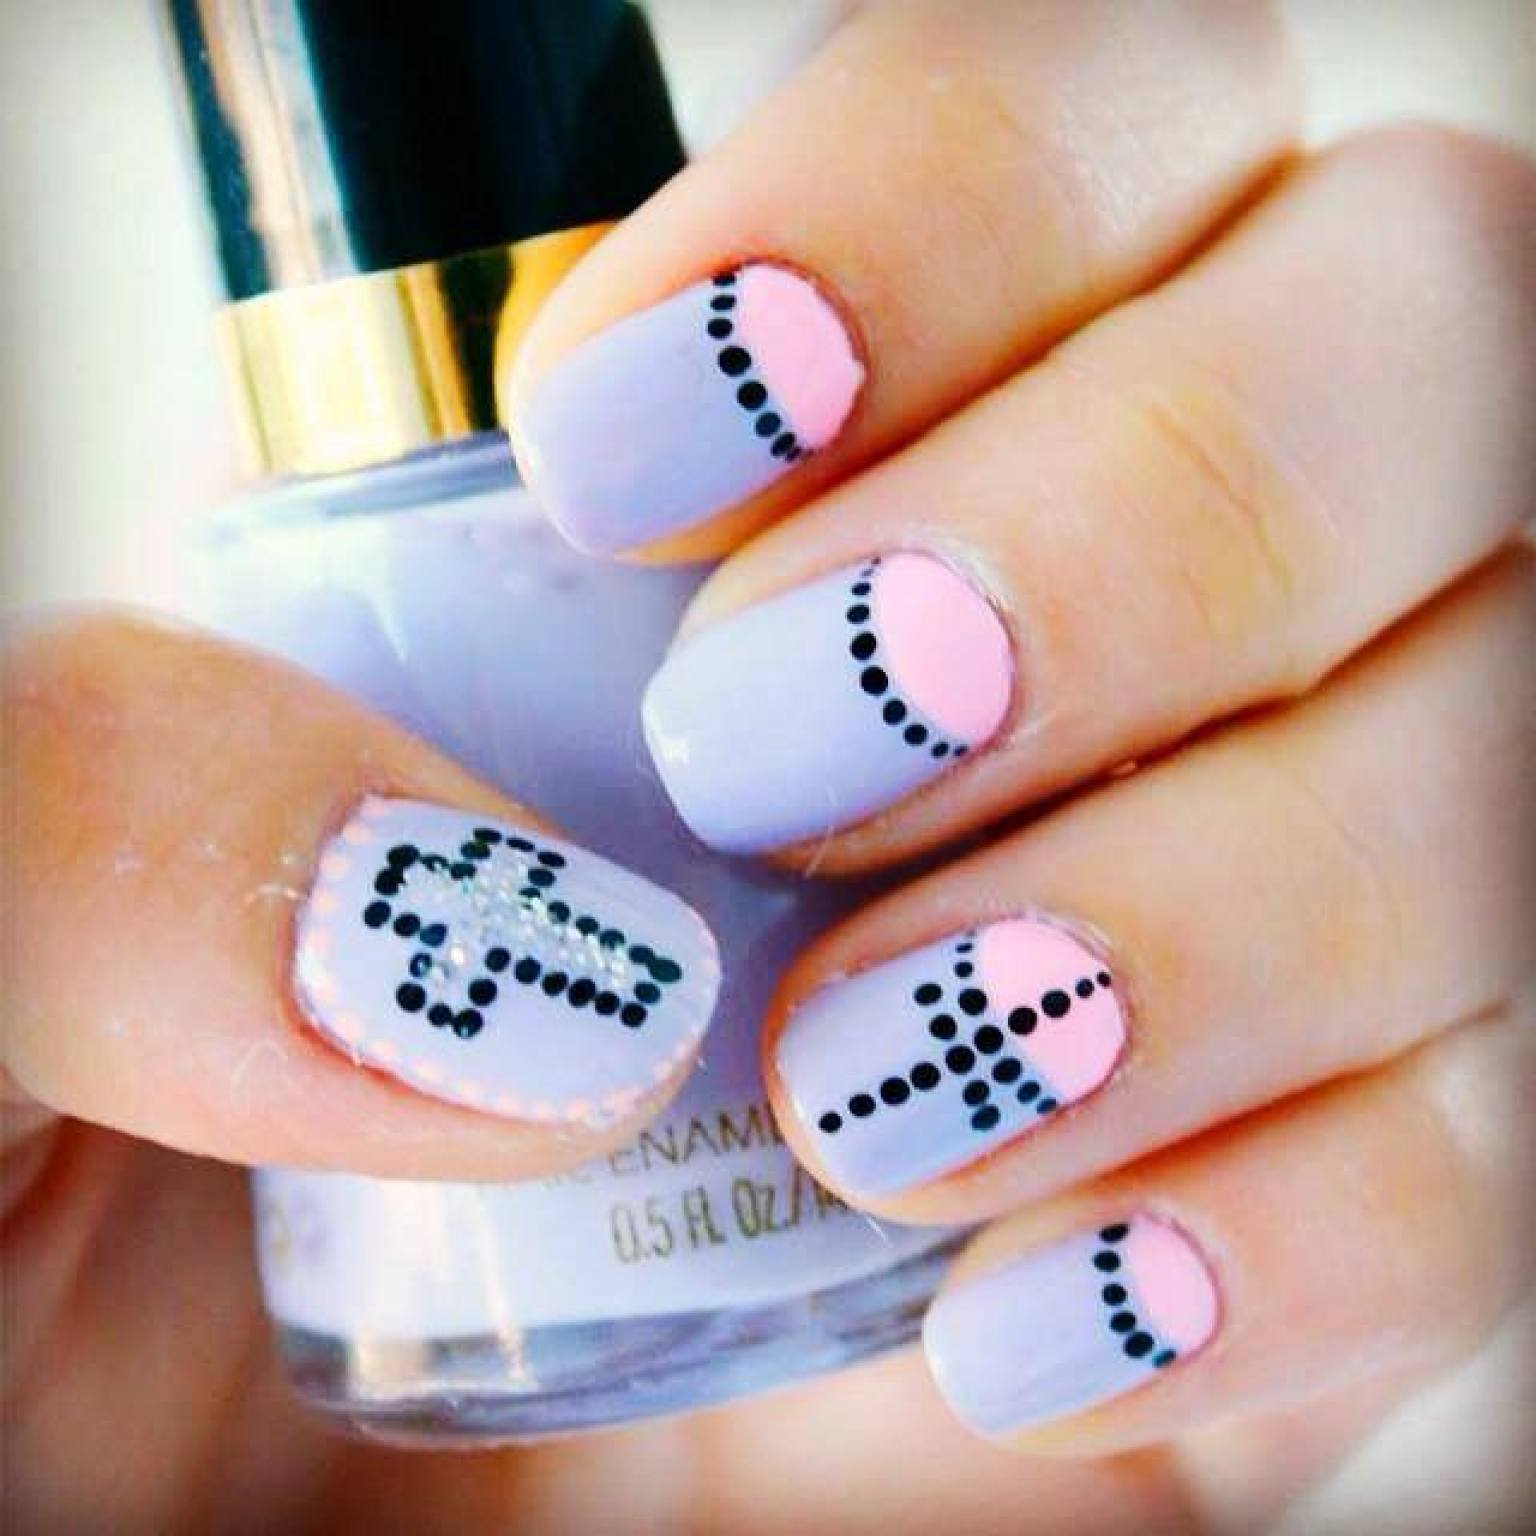 Nail Salons West Los Angeles: Best Nail Salons In LA By 'Hood: Eastside, West Hollywood